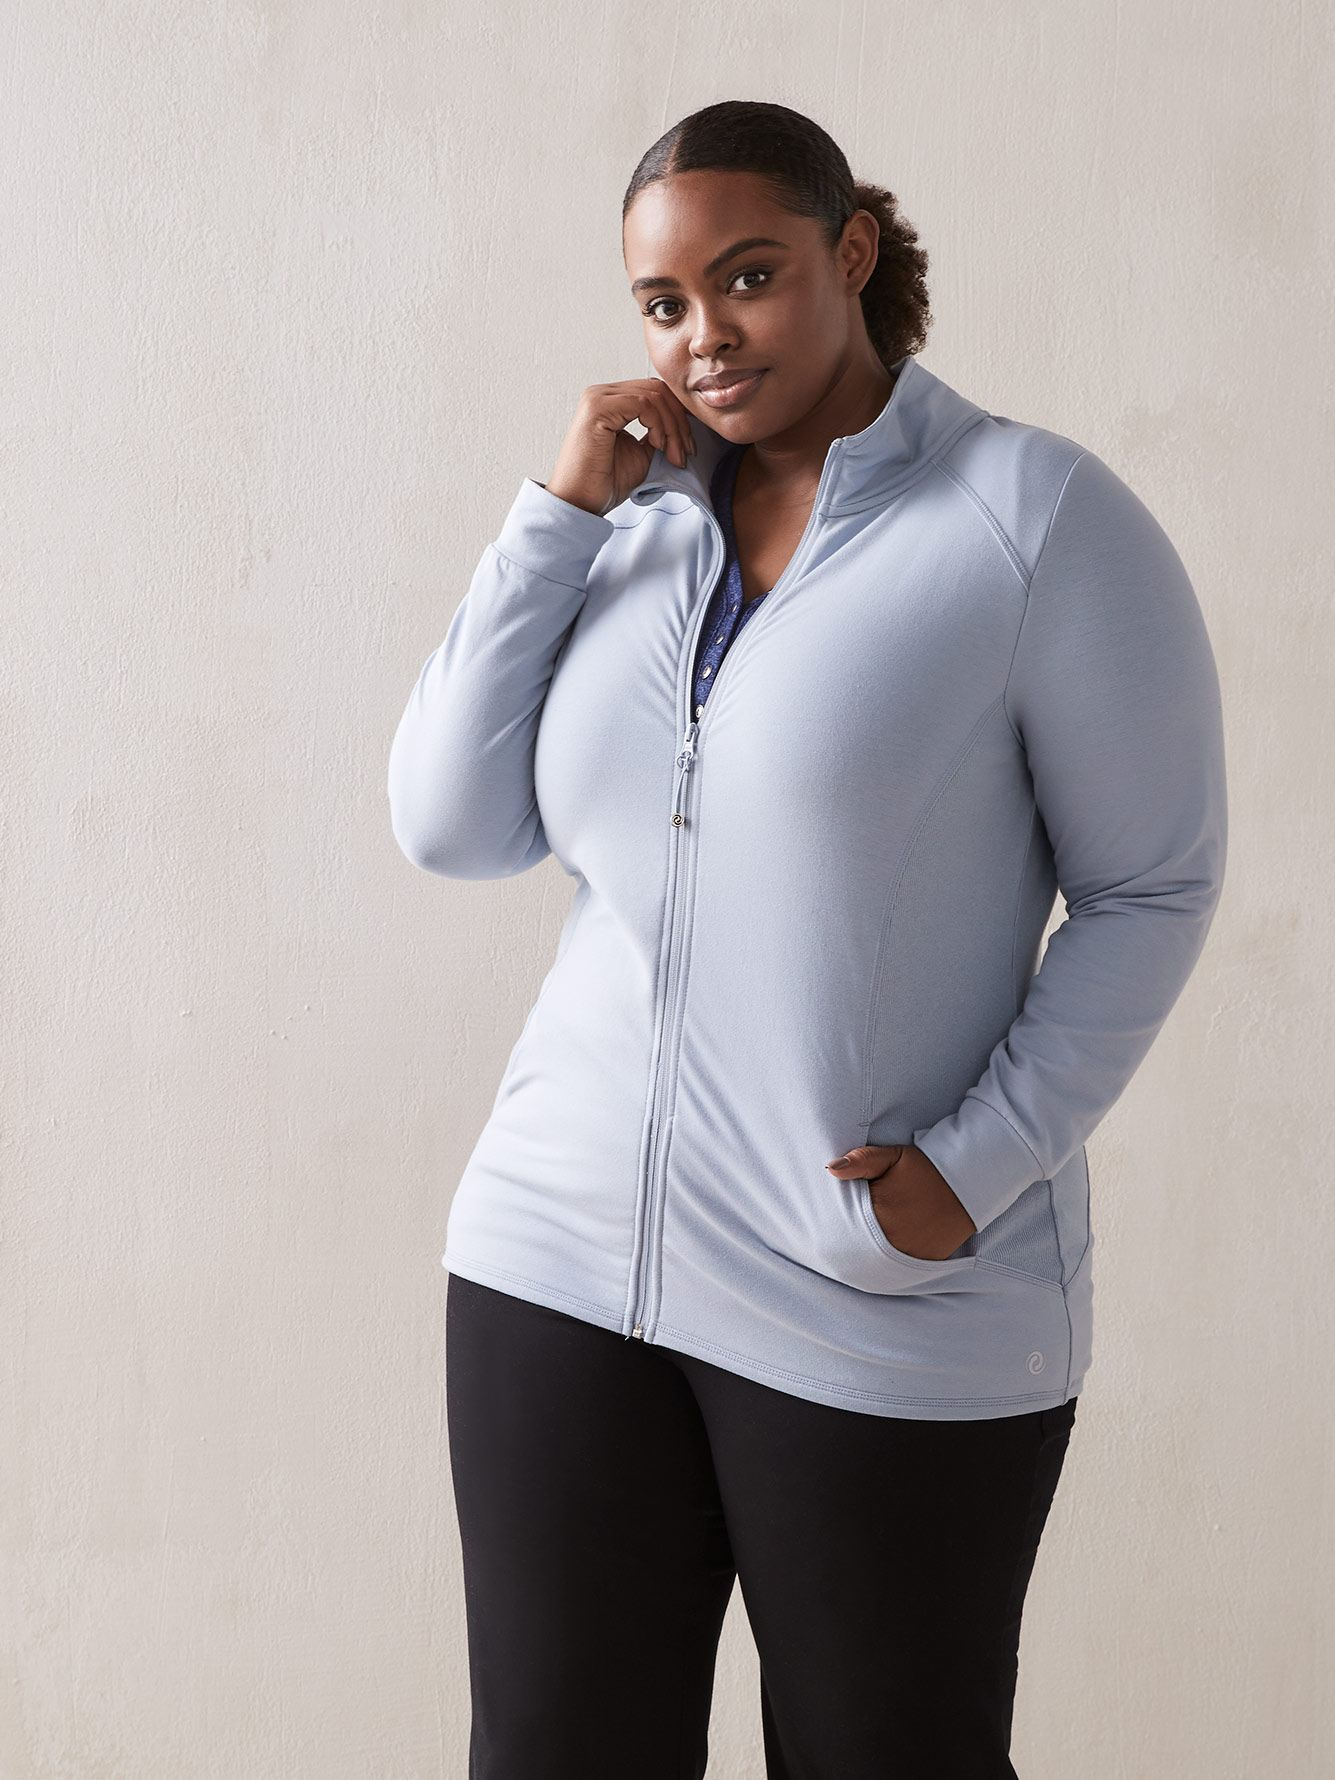 Long Sleeve Mock-Neck Jacket - ActiveZone